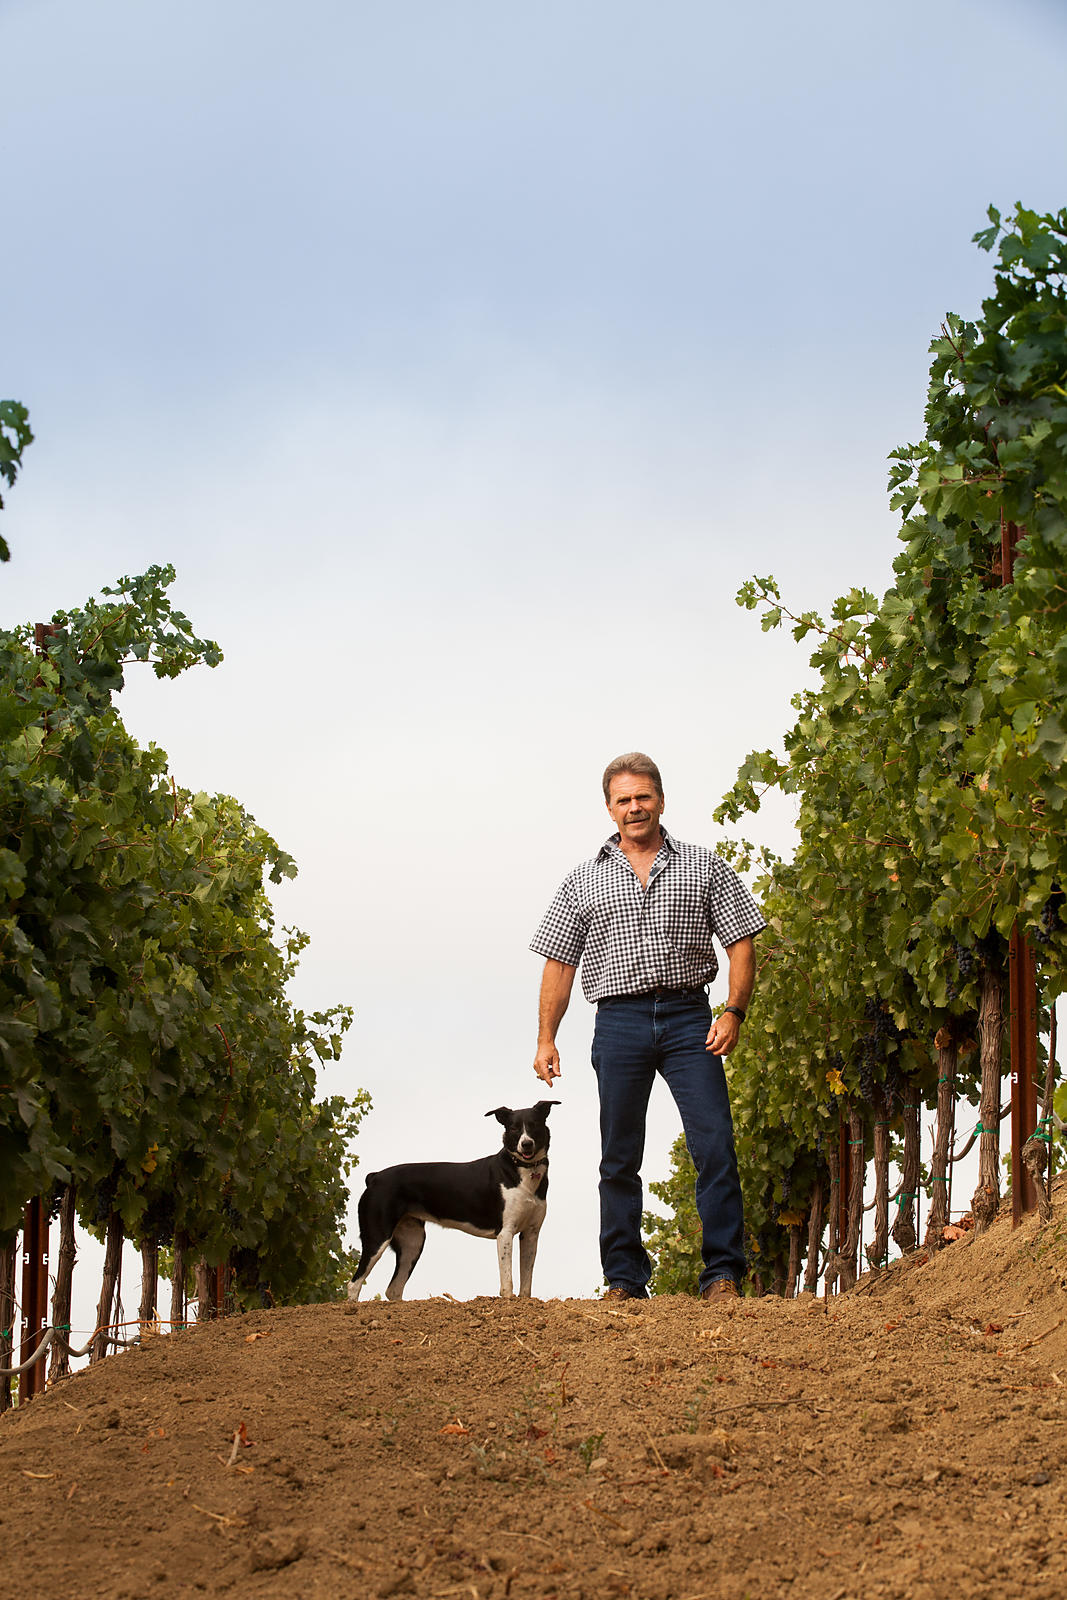 Environmental portrait in Healdsburg, California by Jason Tinacci